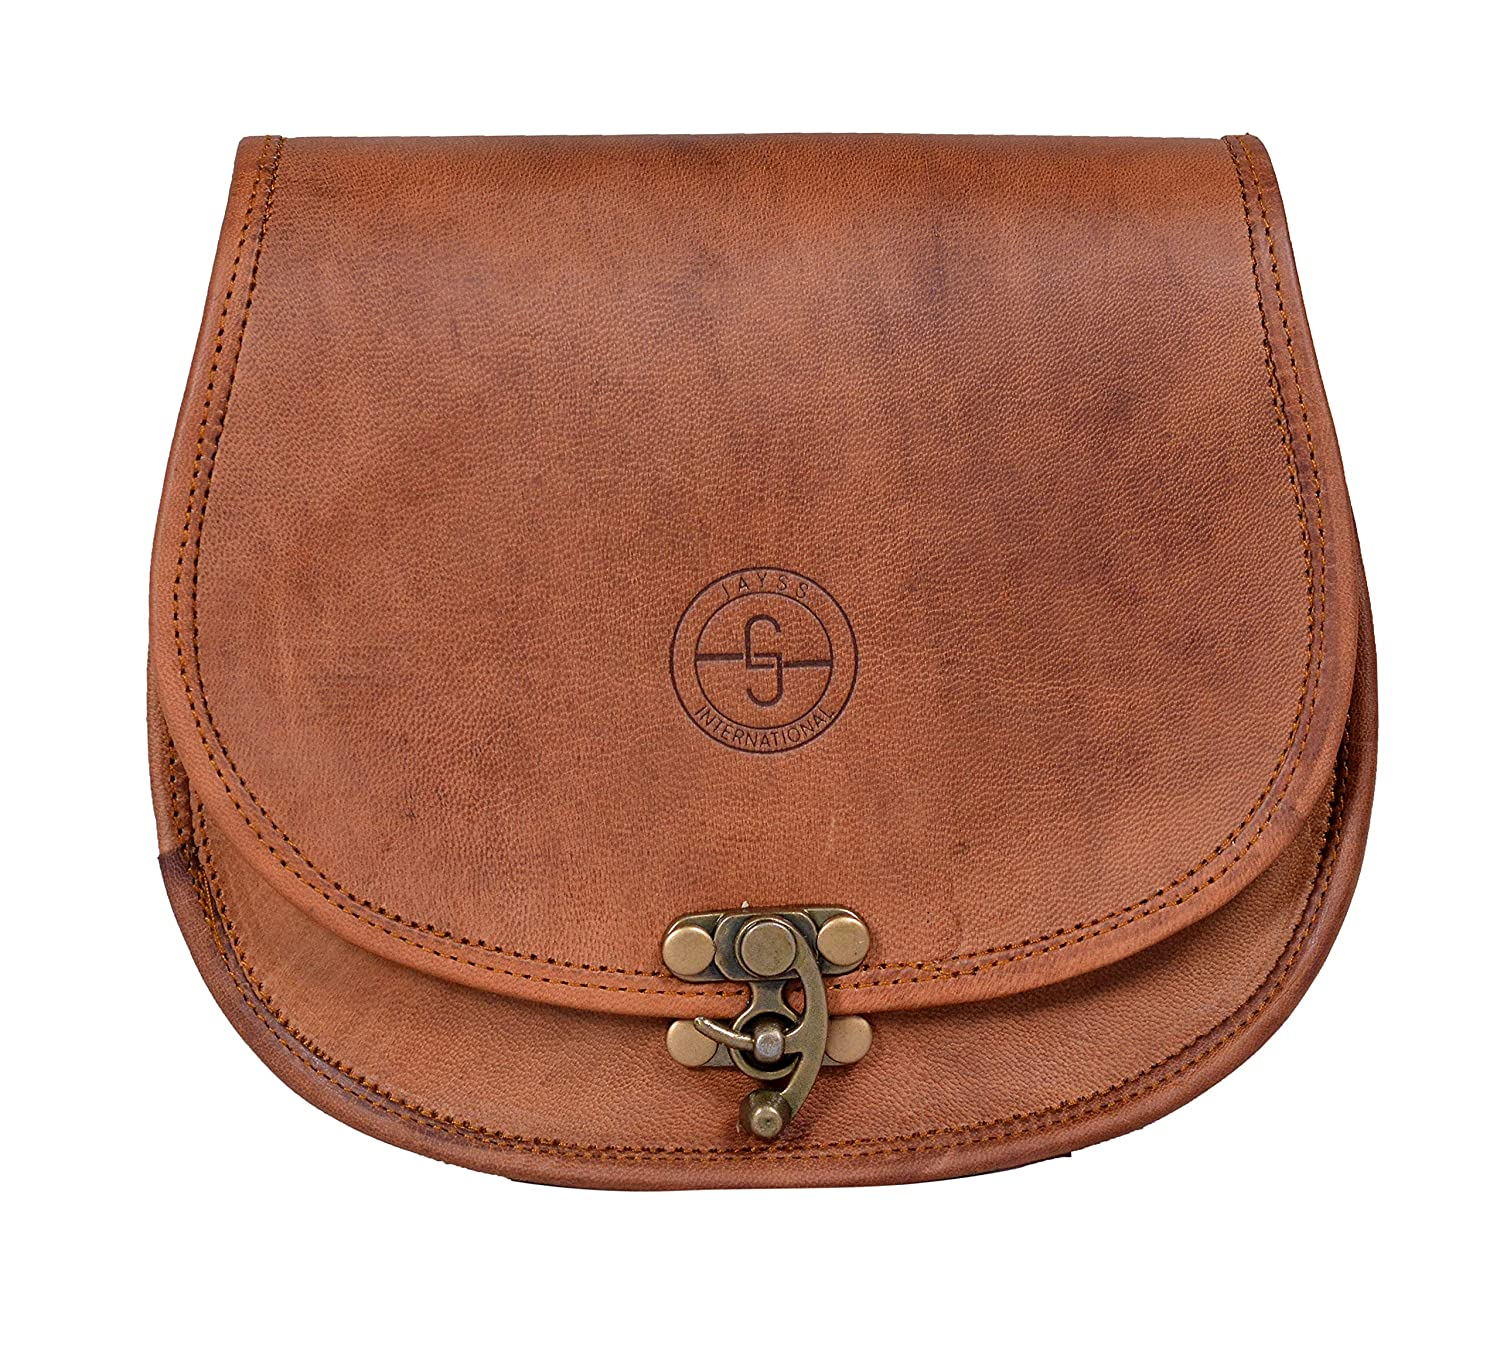 32b9aed27fdf Amazon.com  JAYSS HIDES Handmade Genuine Leather Messenger Sling Cross Body  Bag For Women And Girls (Color Brown).  Jayss International